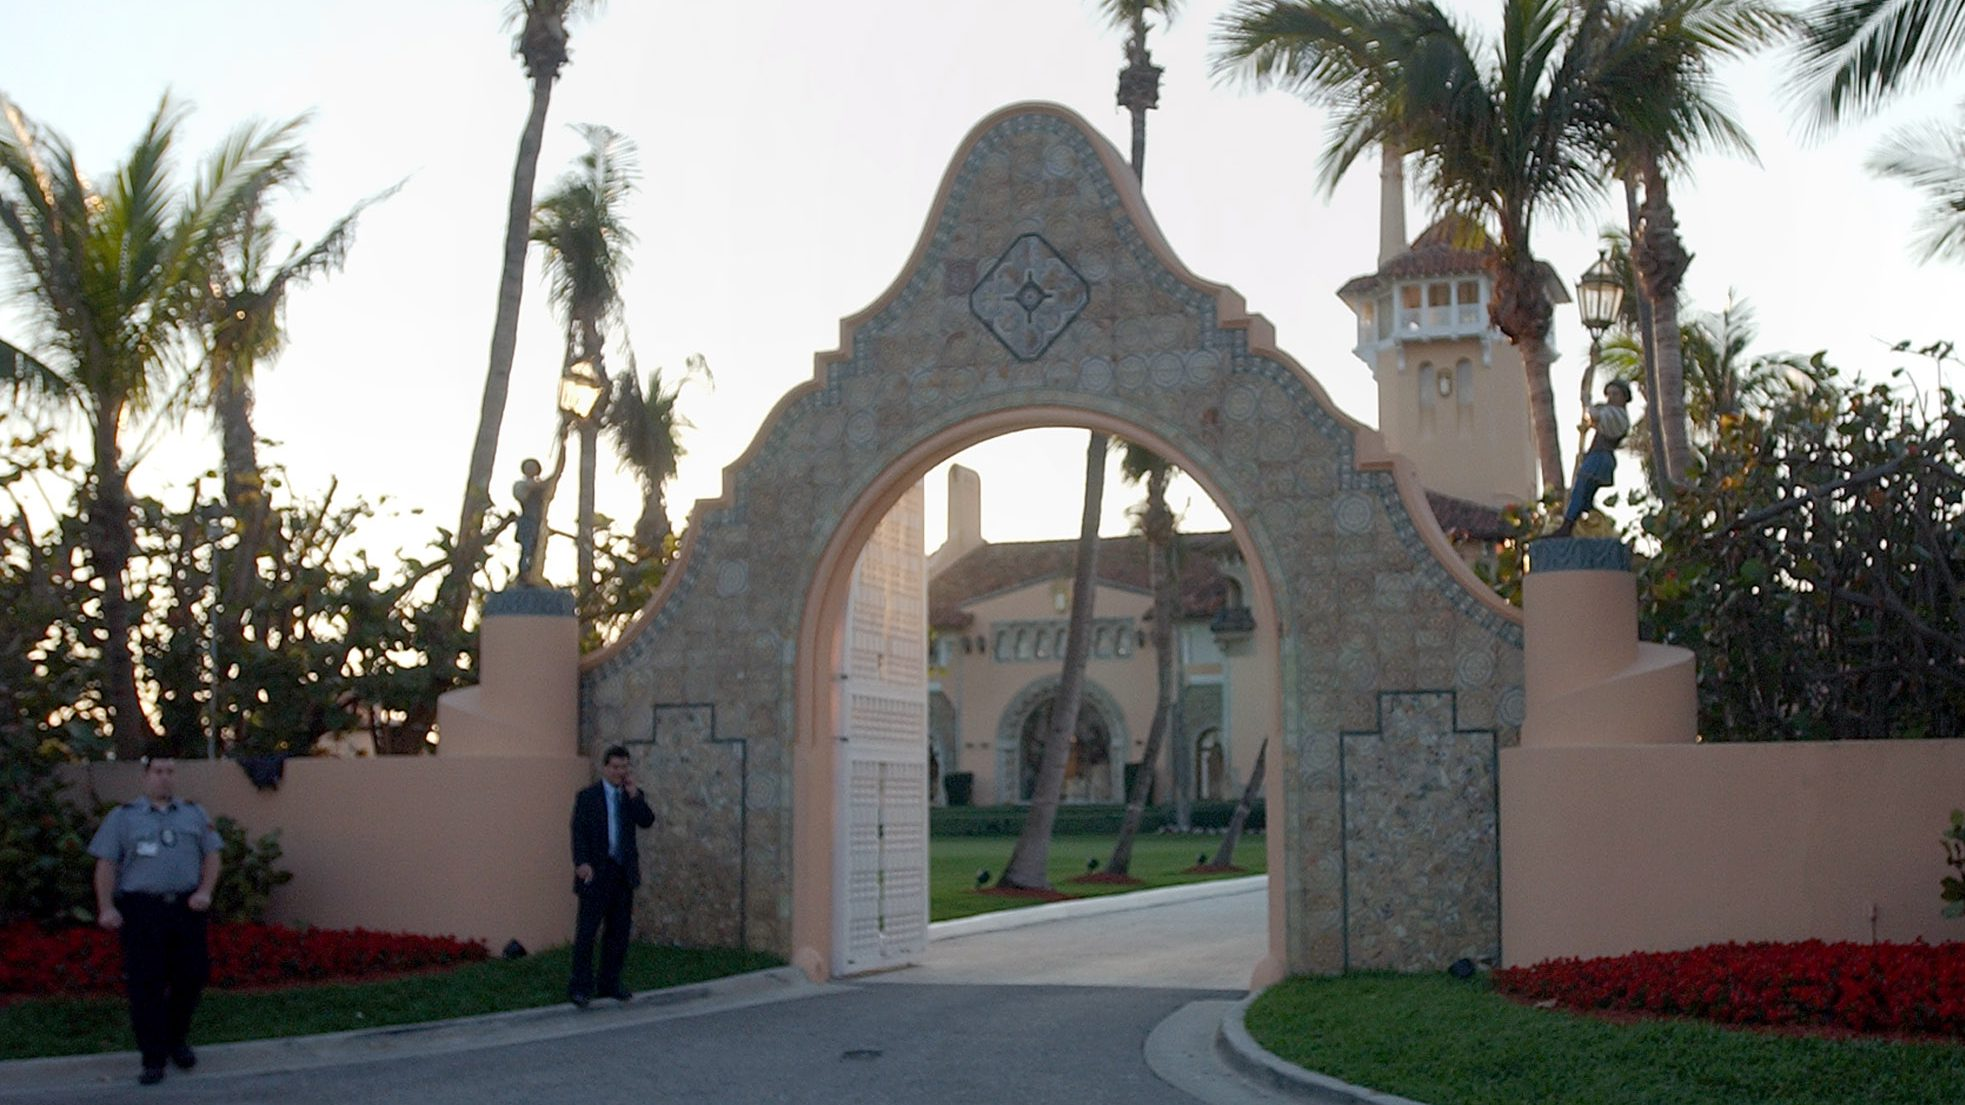 The entrance of Mar-a-Lago, where the reception will take place after the wedding of Donald Trump and Melania Knauss  Friday, Jan. 21, 2005 in West Palm Beach, Fla. The wedding will be held on Saturday, Jan. 22, 2005. (AP Photo/Alan Diaz)